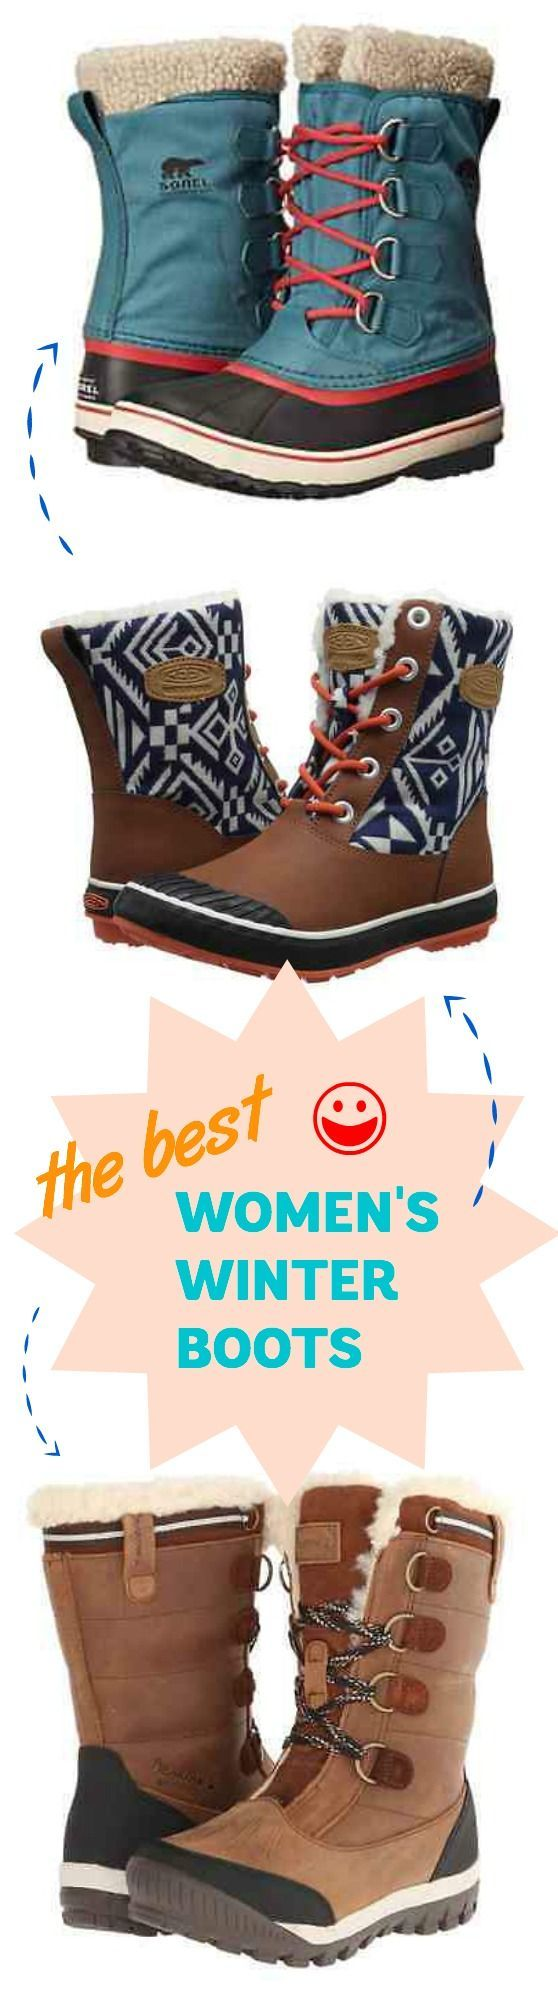 I kind of want all of these, ha ha! What's your go to winter boot?